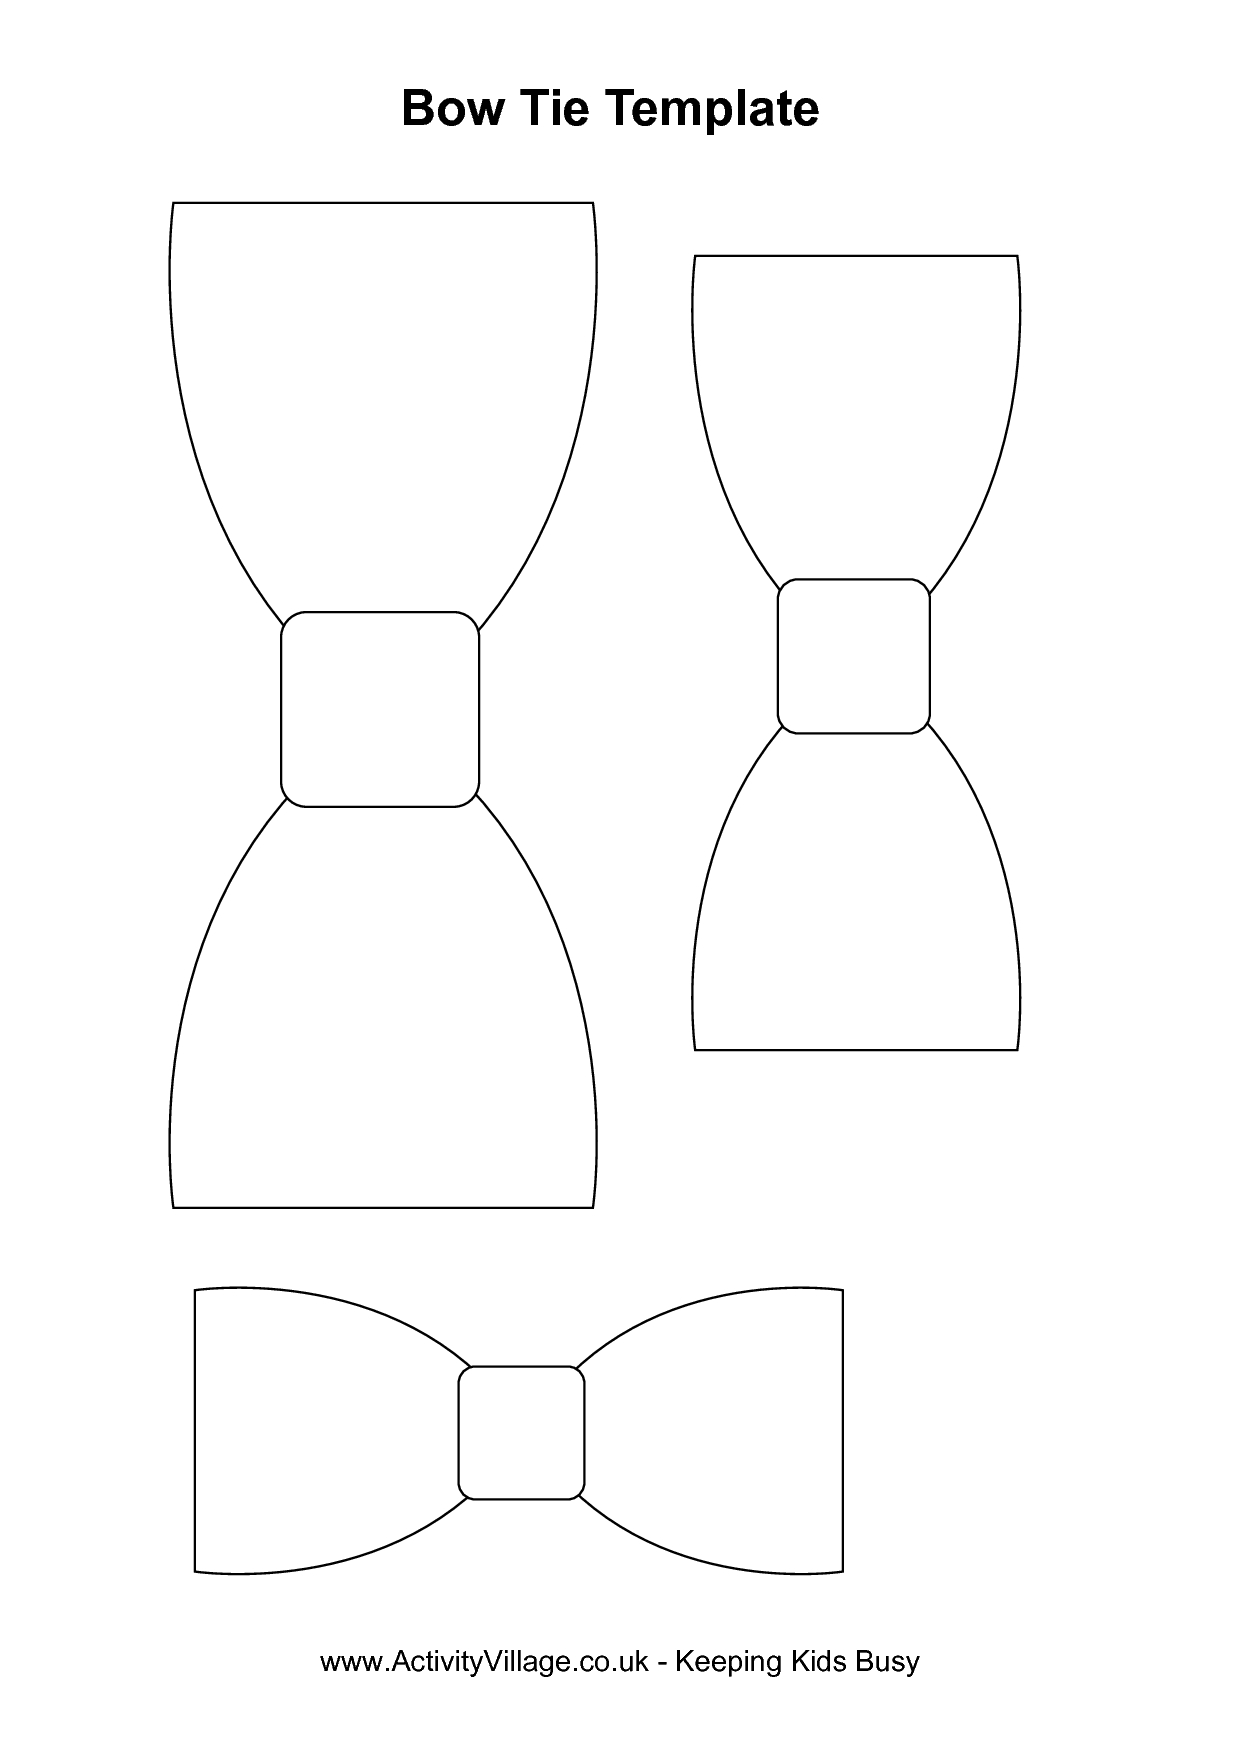 Free Coloring Pages | Mad Scientist Party In 2019 | Pinterest | Baby - Free Bow Tie Template Printable